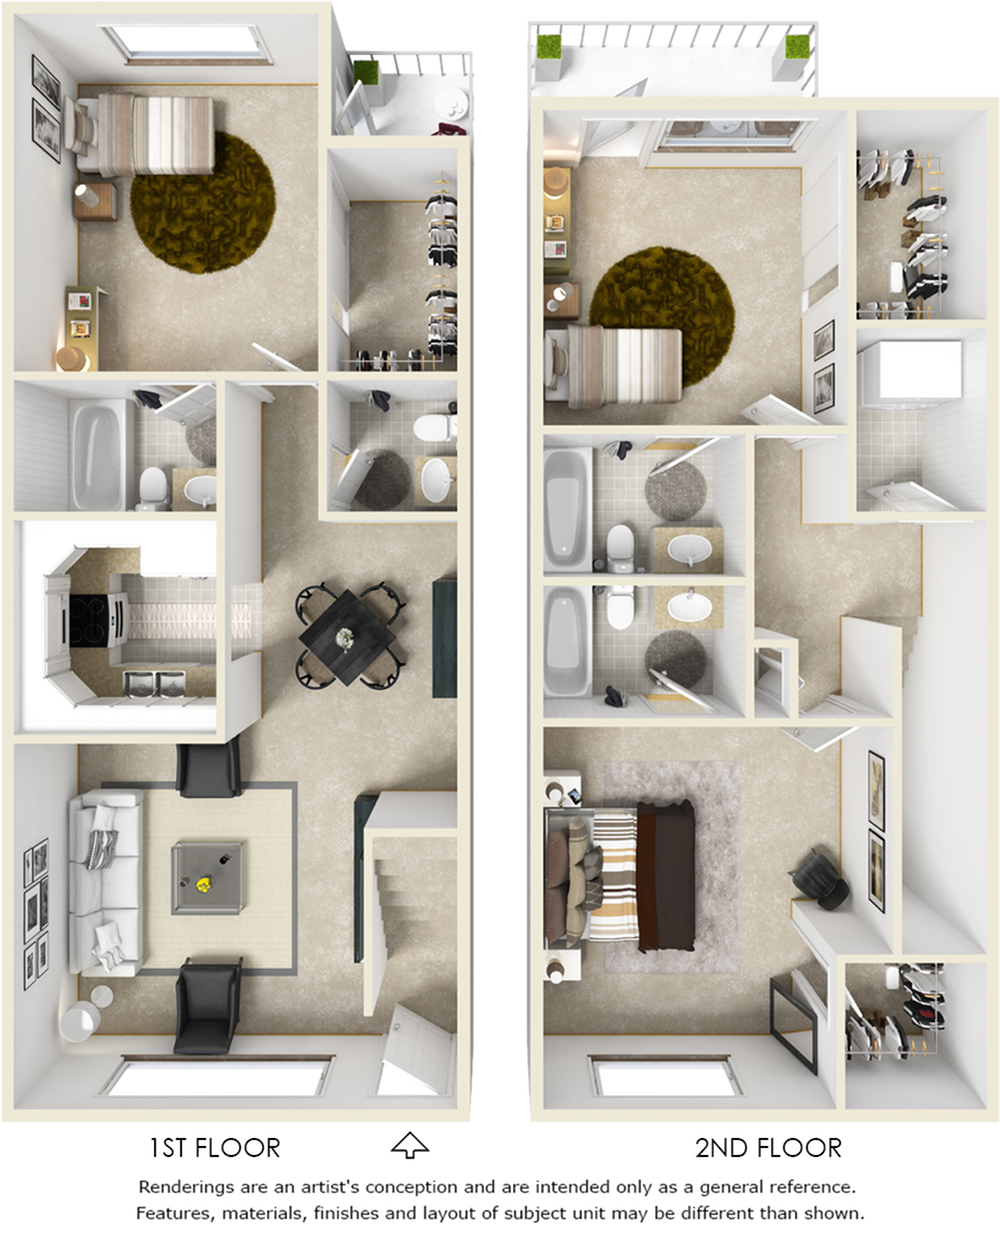 Windsor 3 bedrooms 3.5 bathrooms floor plan